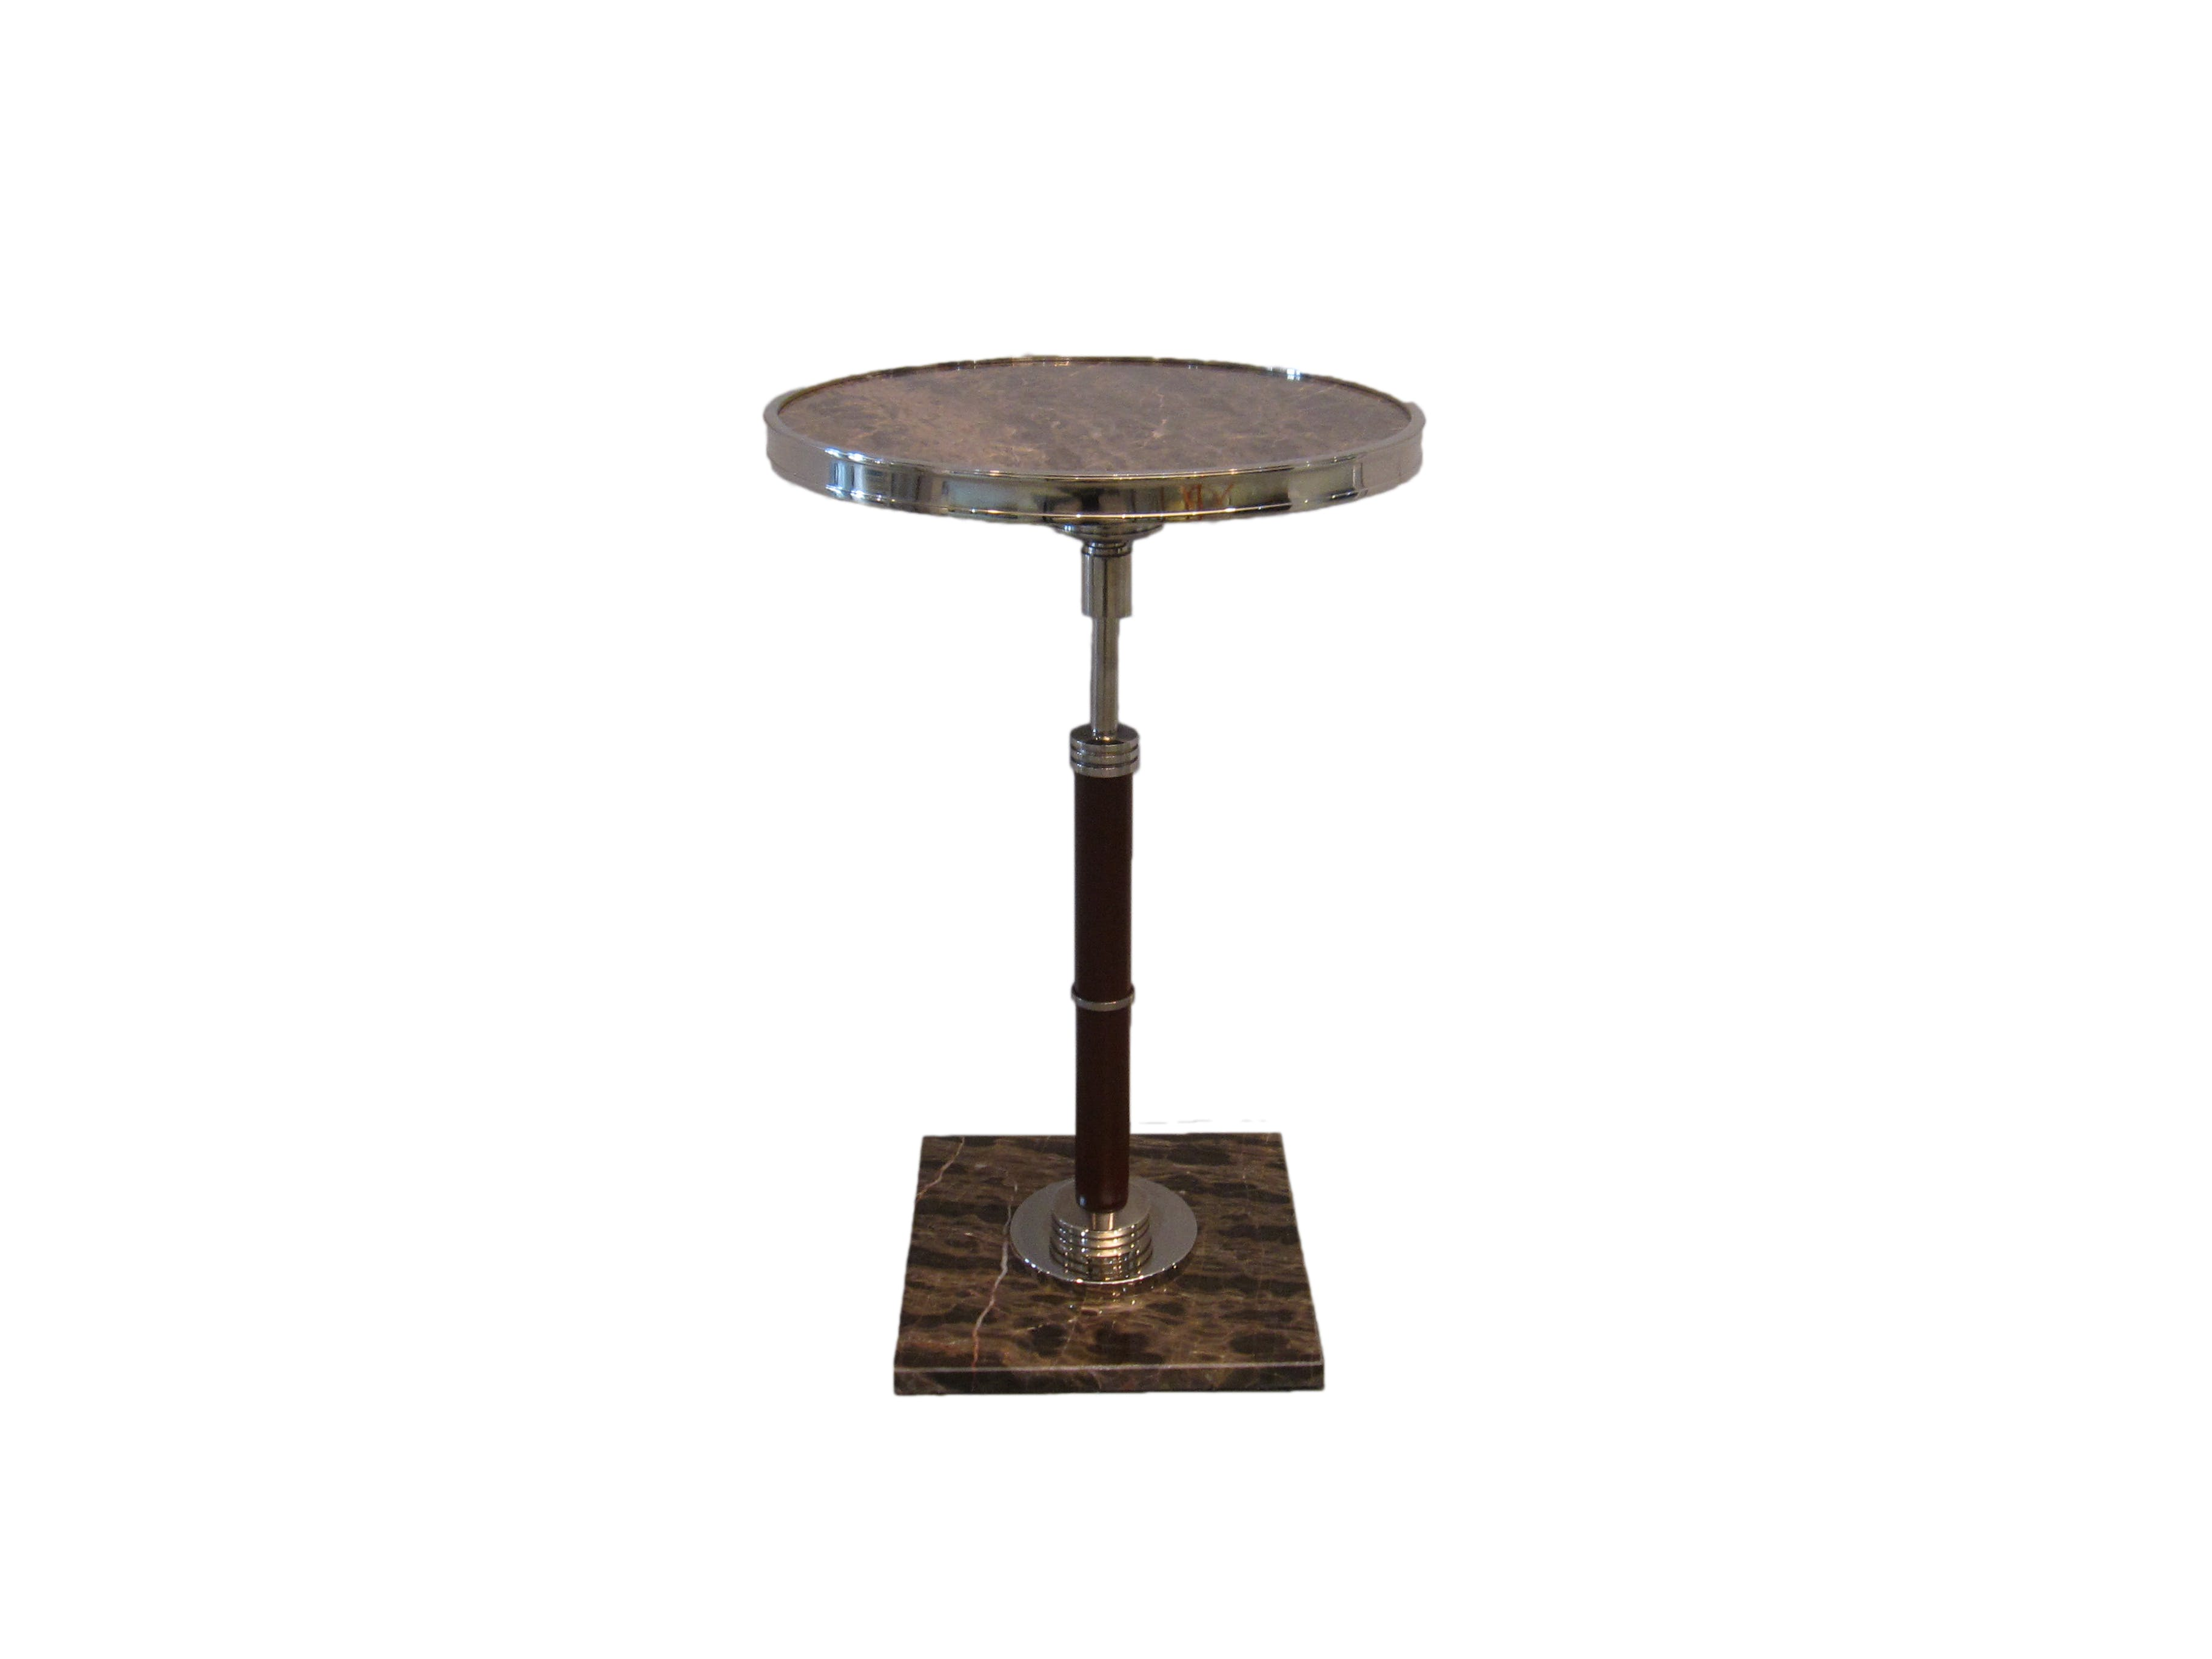 cigar drink accent side table eisenhower consignment patio umbrella marble top polished nickel wood end tables purple chair blue nightstand mango dining coffee and antique drop